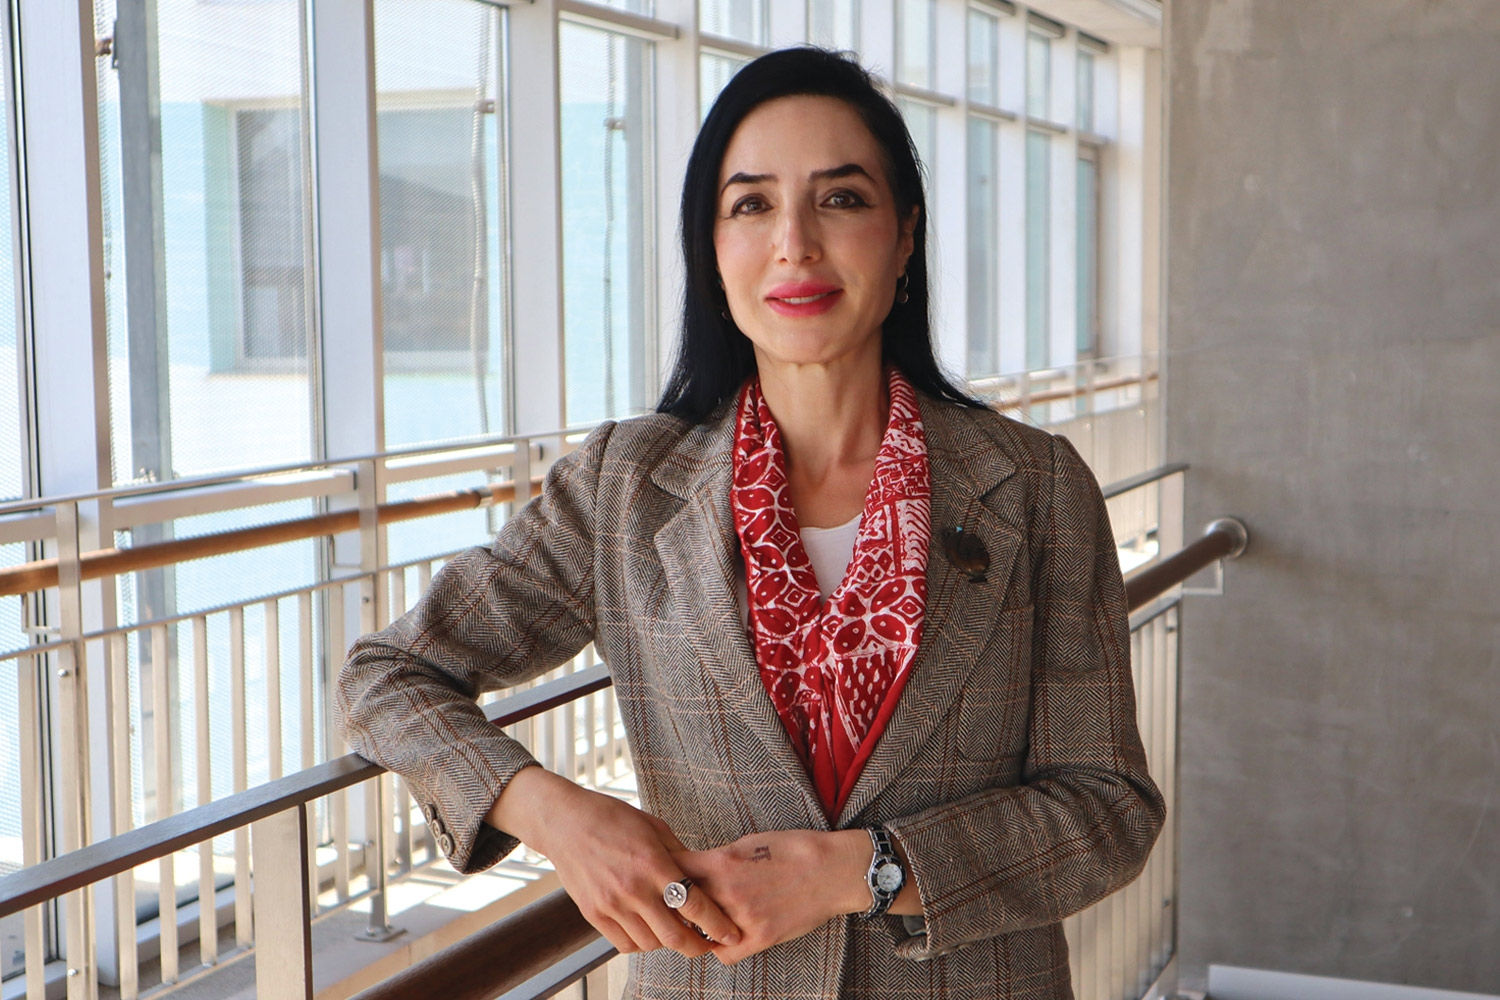 IUE professor elected to the international board